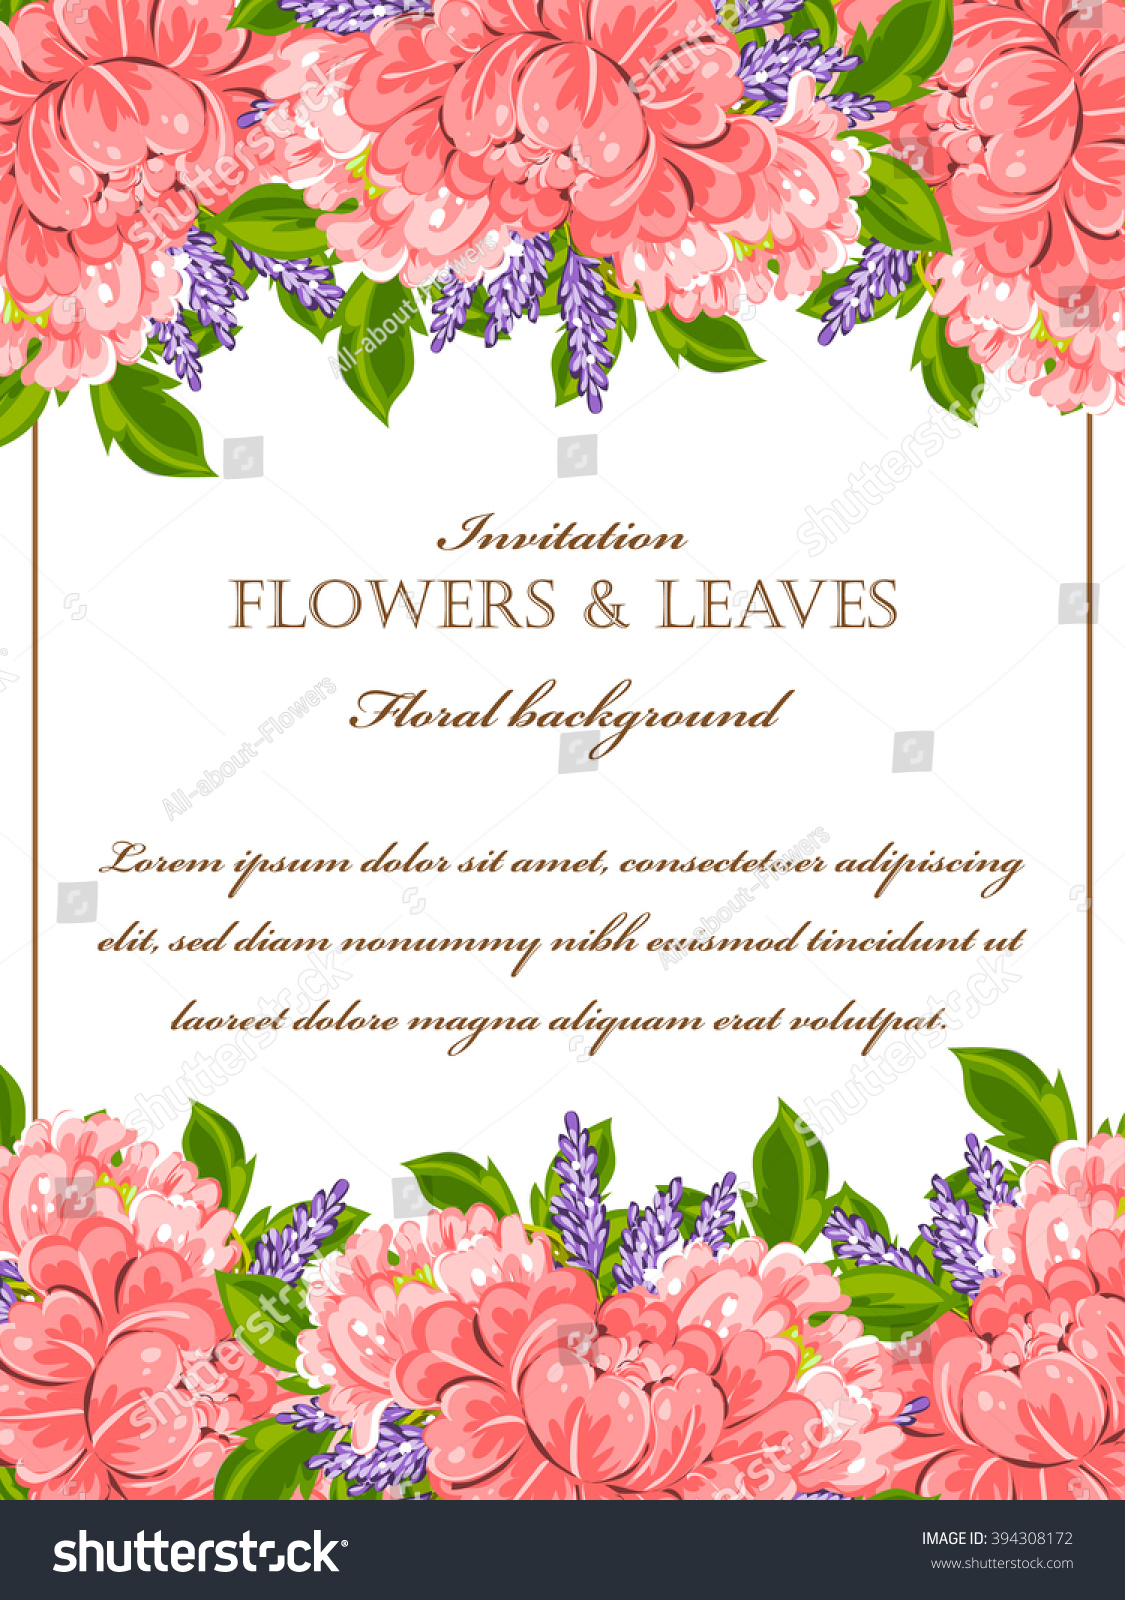 Vintage Delicate Invitation With Flowers For Wedding Marriage